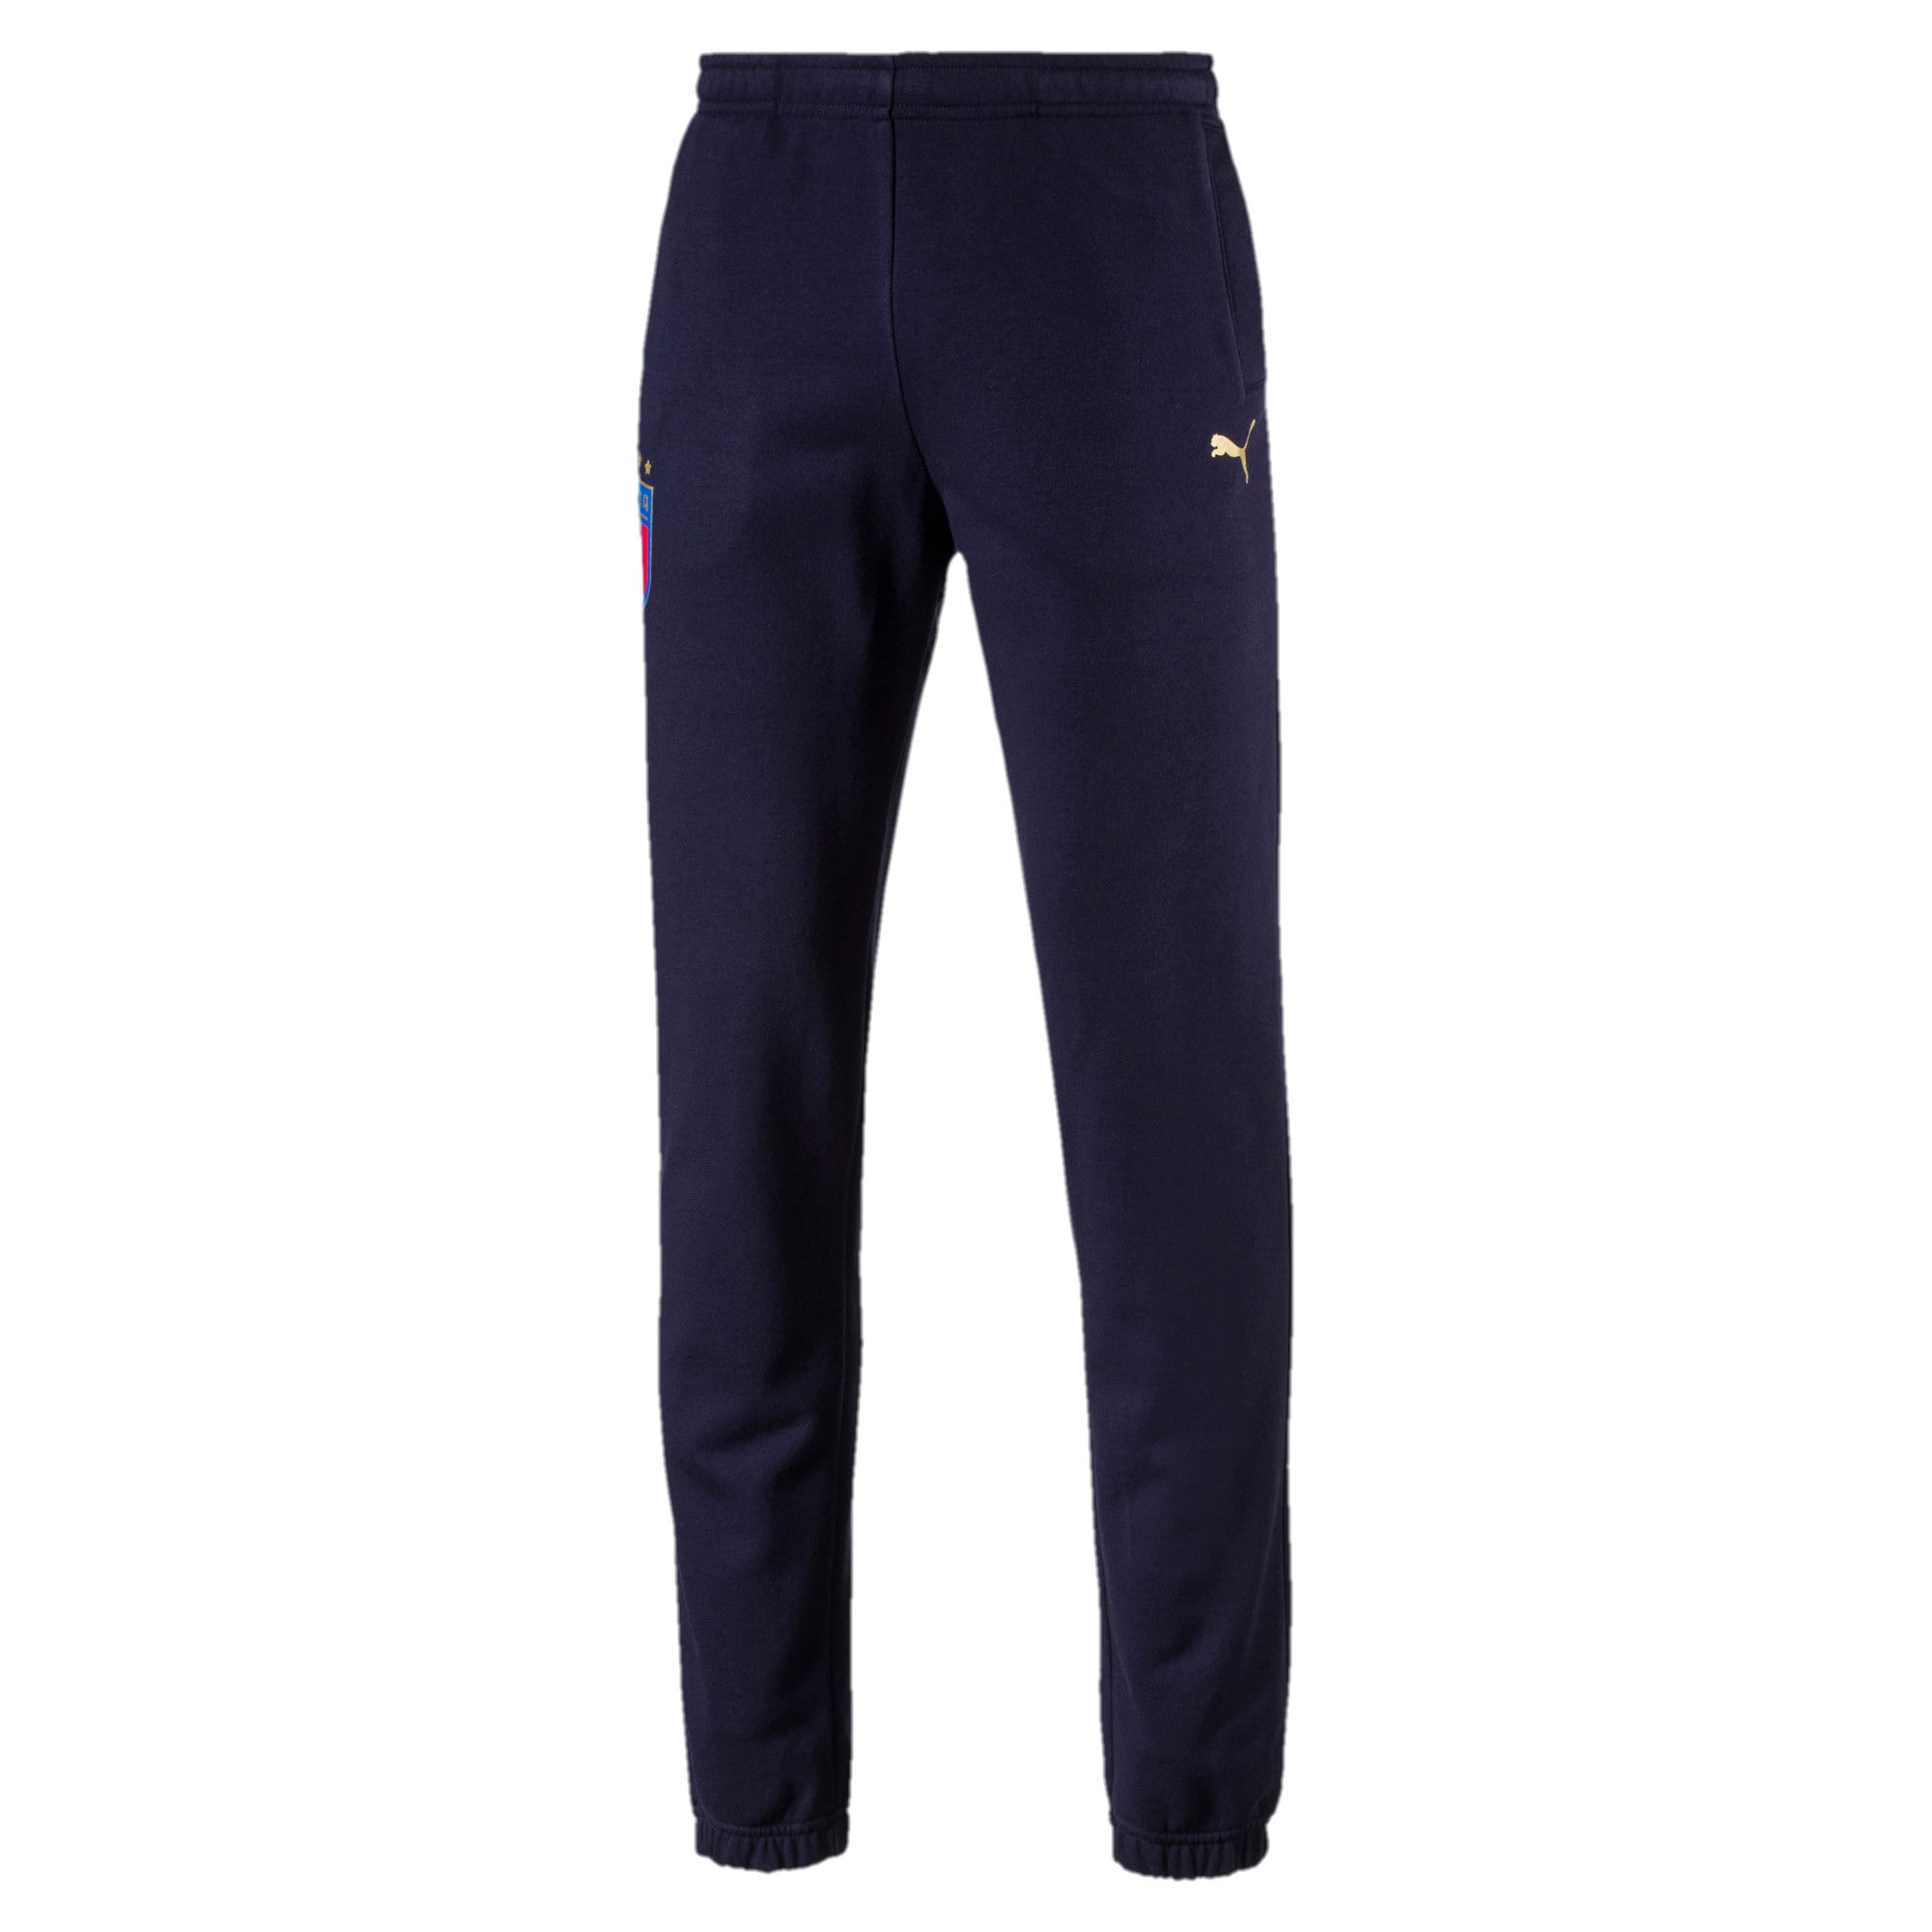 Thumbnail 1 of Italia Herren Jogginghose, Peacoat, medium